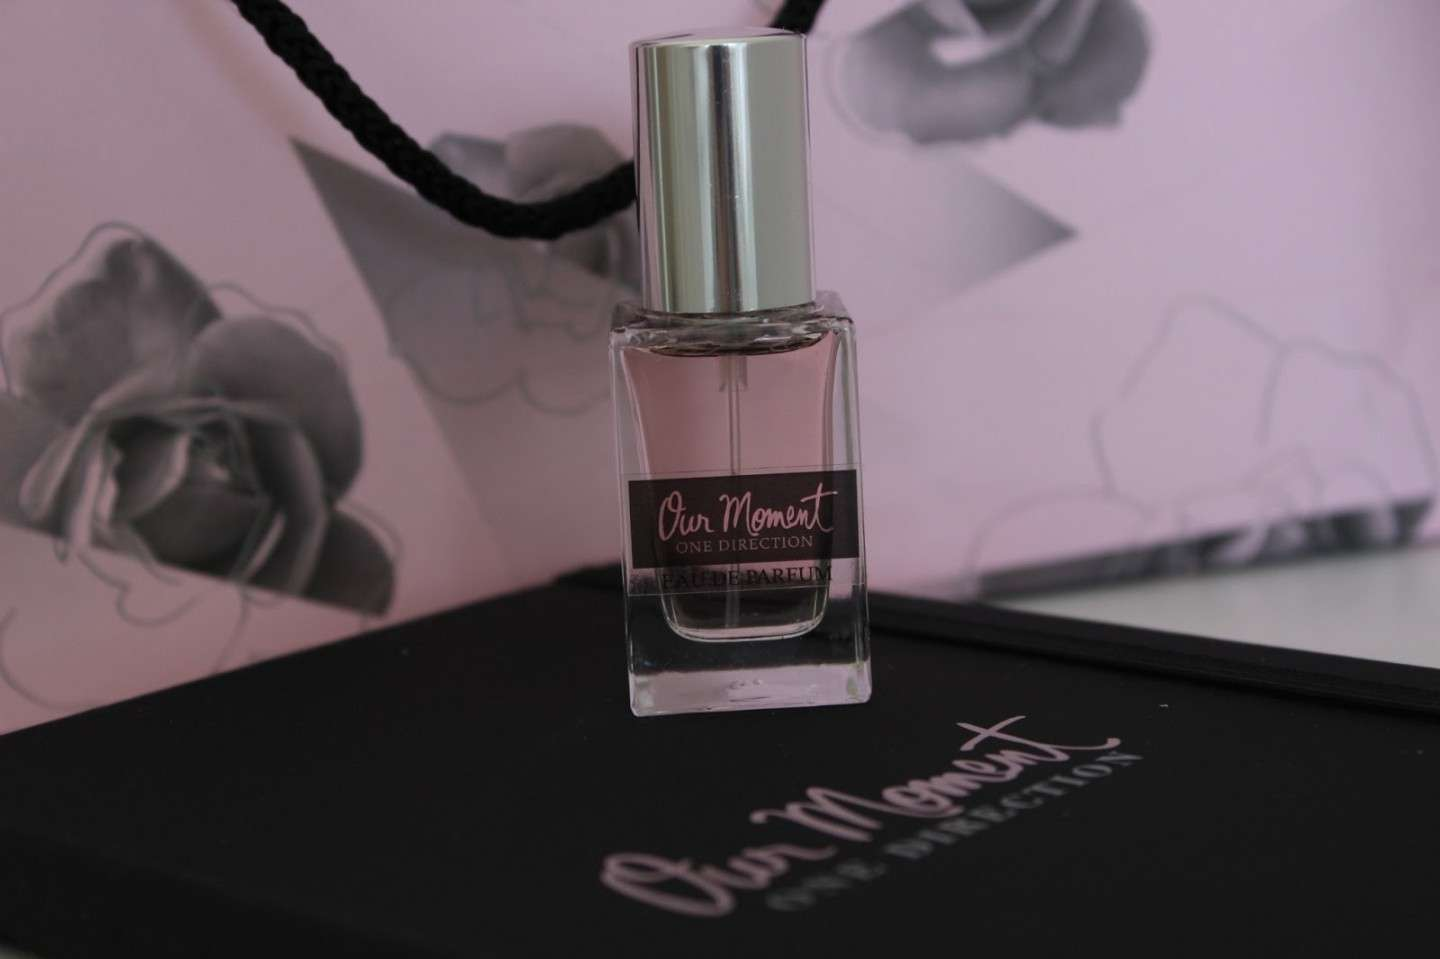 Our Moment profumo